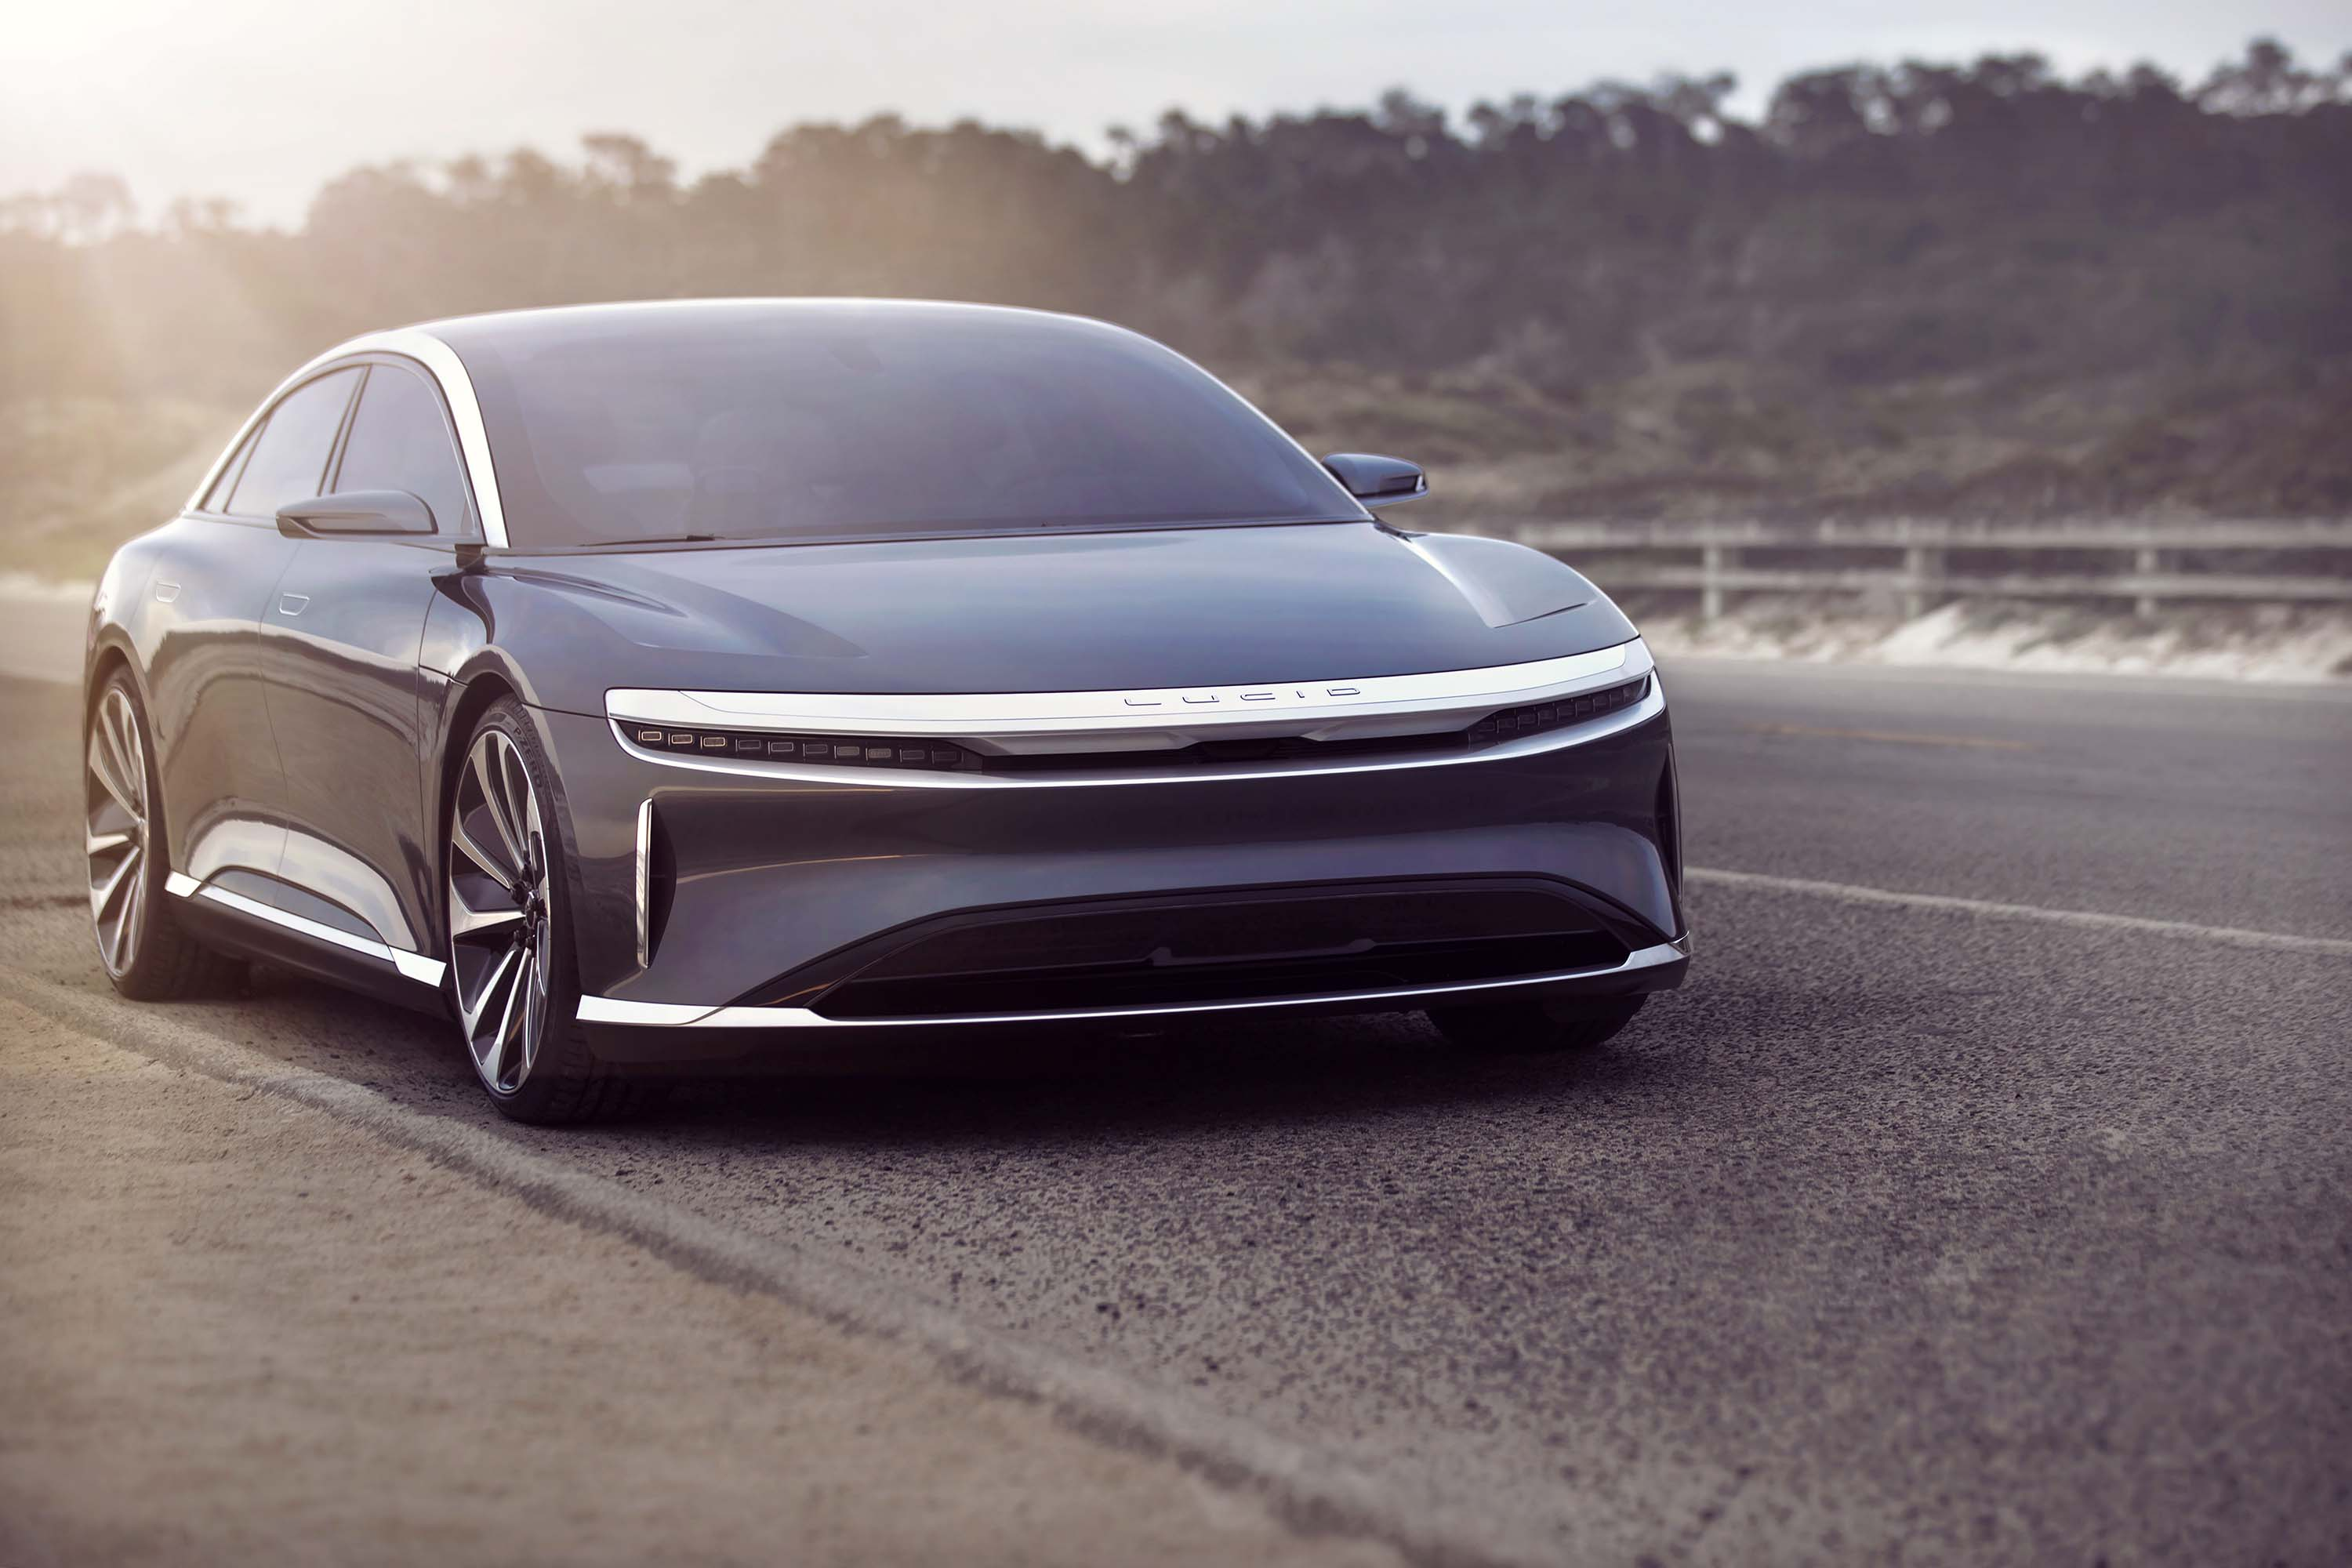 The Lucid Air could have the longest range on the market - CNN Video